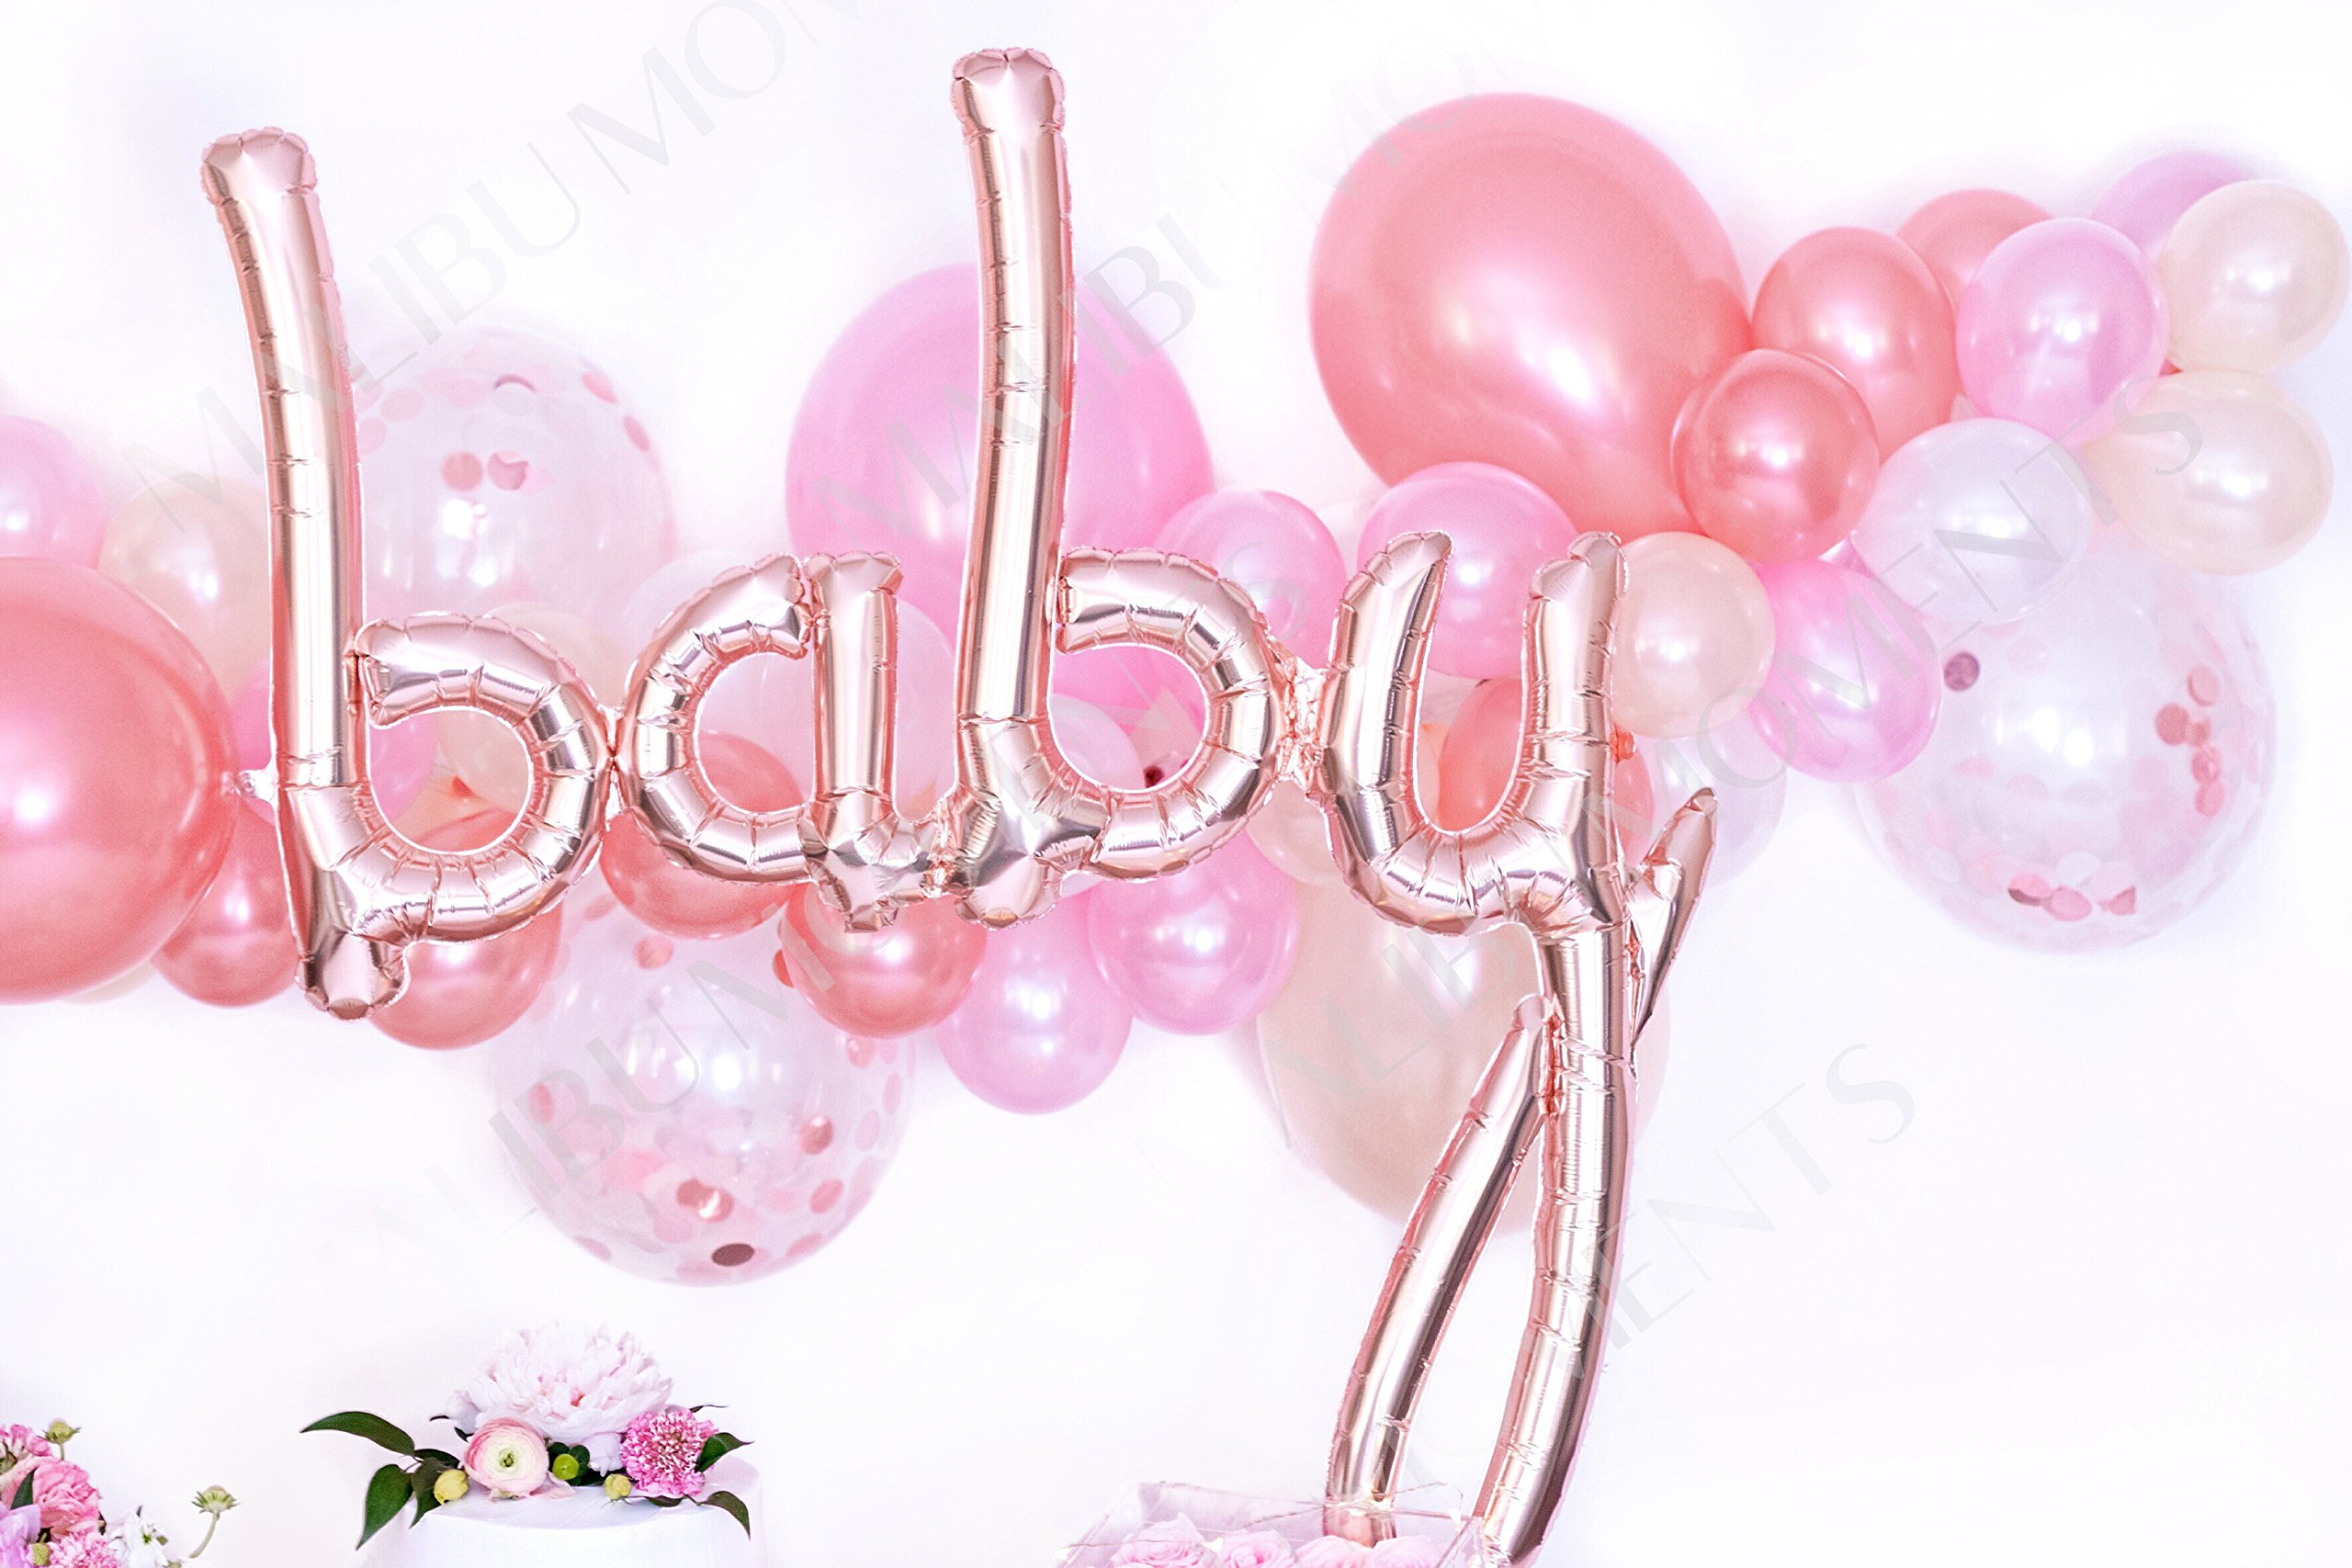 Baby Shower Decorations for Girl   Baby Girl Party Supplies  It's a Girl   Balloon Garland with 72 Balloons 11'' & 5'' Pink, Blush and Confetti with Rose Gold Baby Script Balloon (Pink) by Malibu Moments (Image #3)